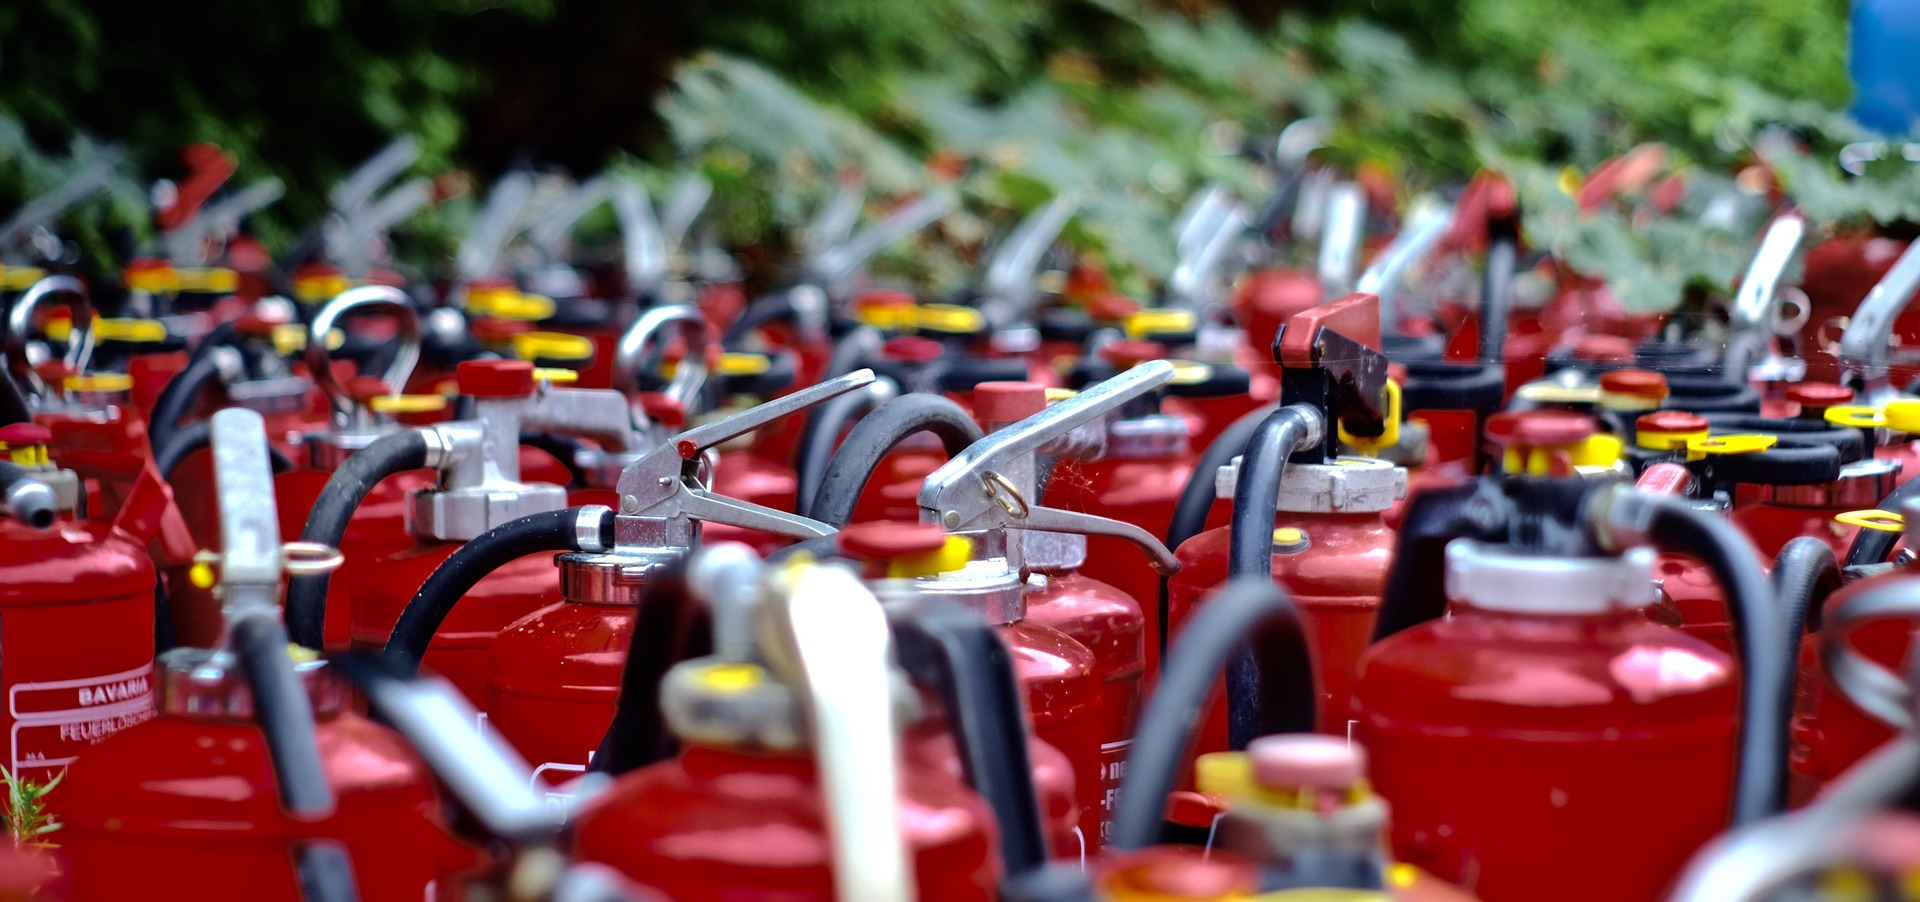 5 Types of fire extinguishers